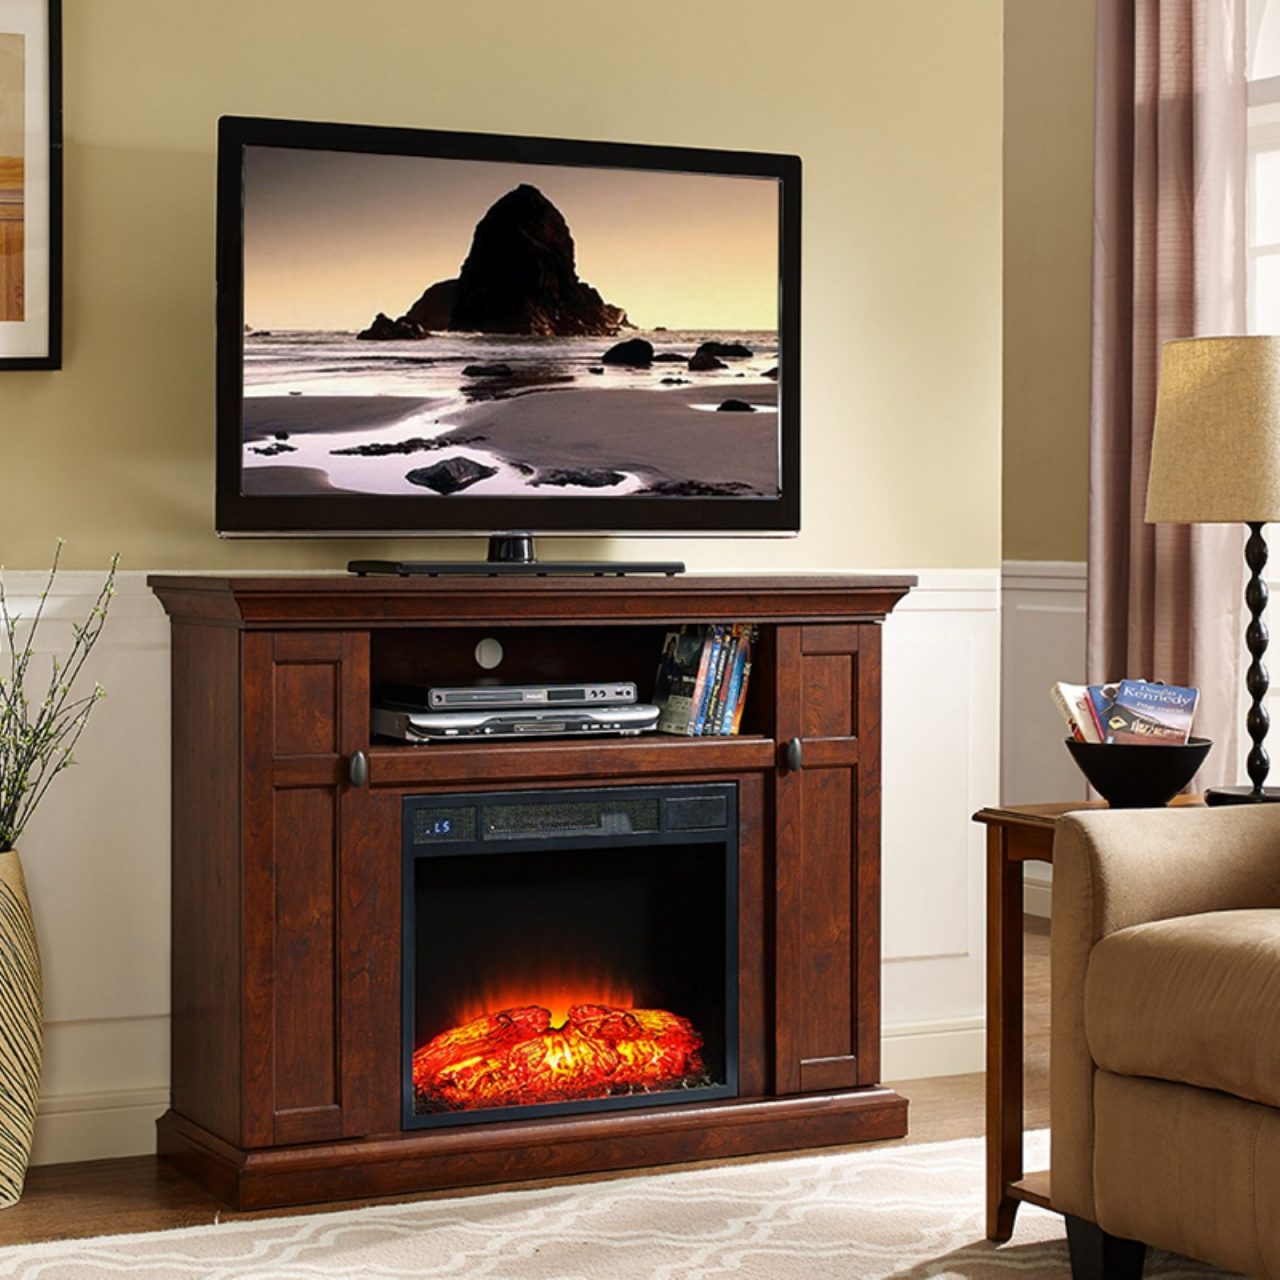 built in electric fireplace and tv design home source industries tao electric fireplace tv stand from built in electric fireplace and tv design